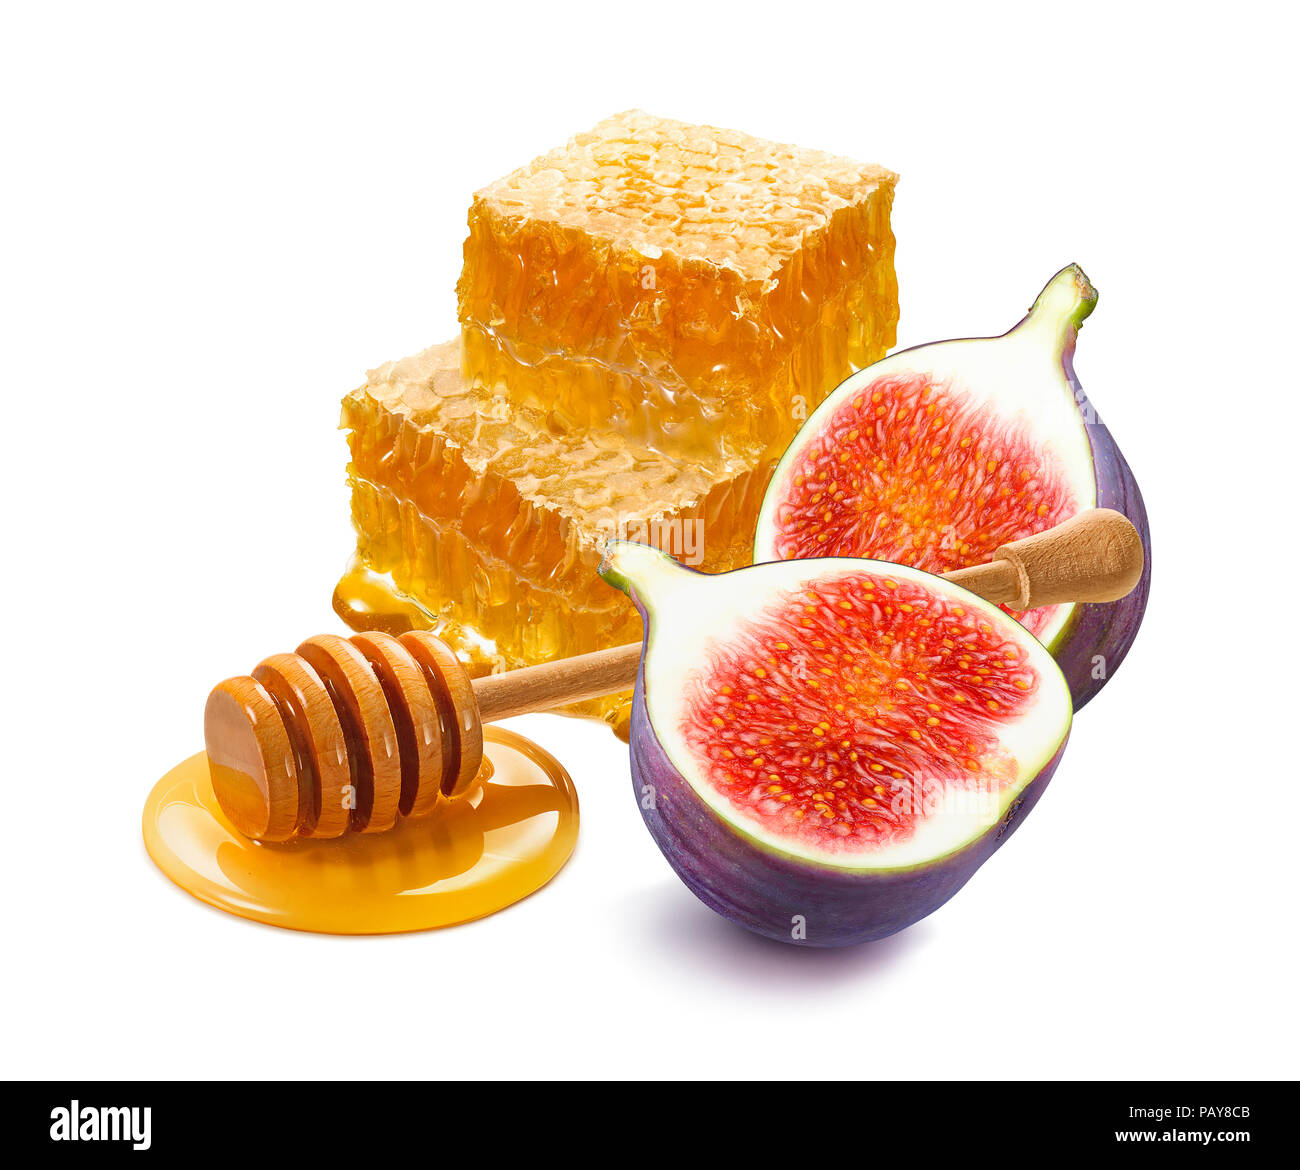 Pile of honeycomb pieces, honey dipper and fresh cut fig isolated on white background. Horizonal composition with clipping path - Stock Image